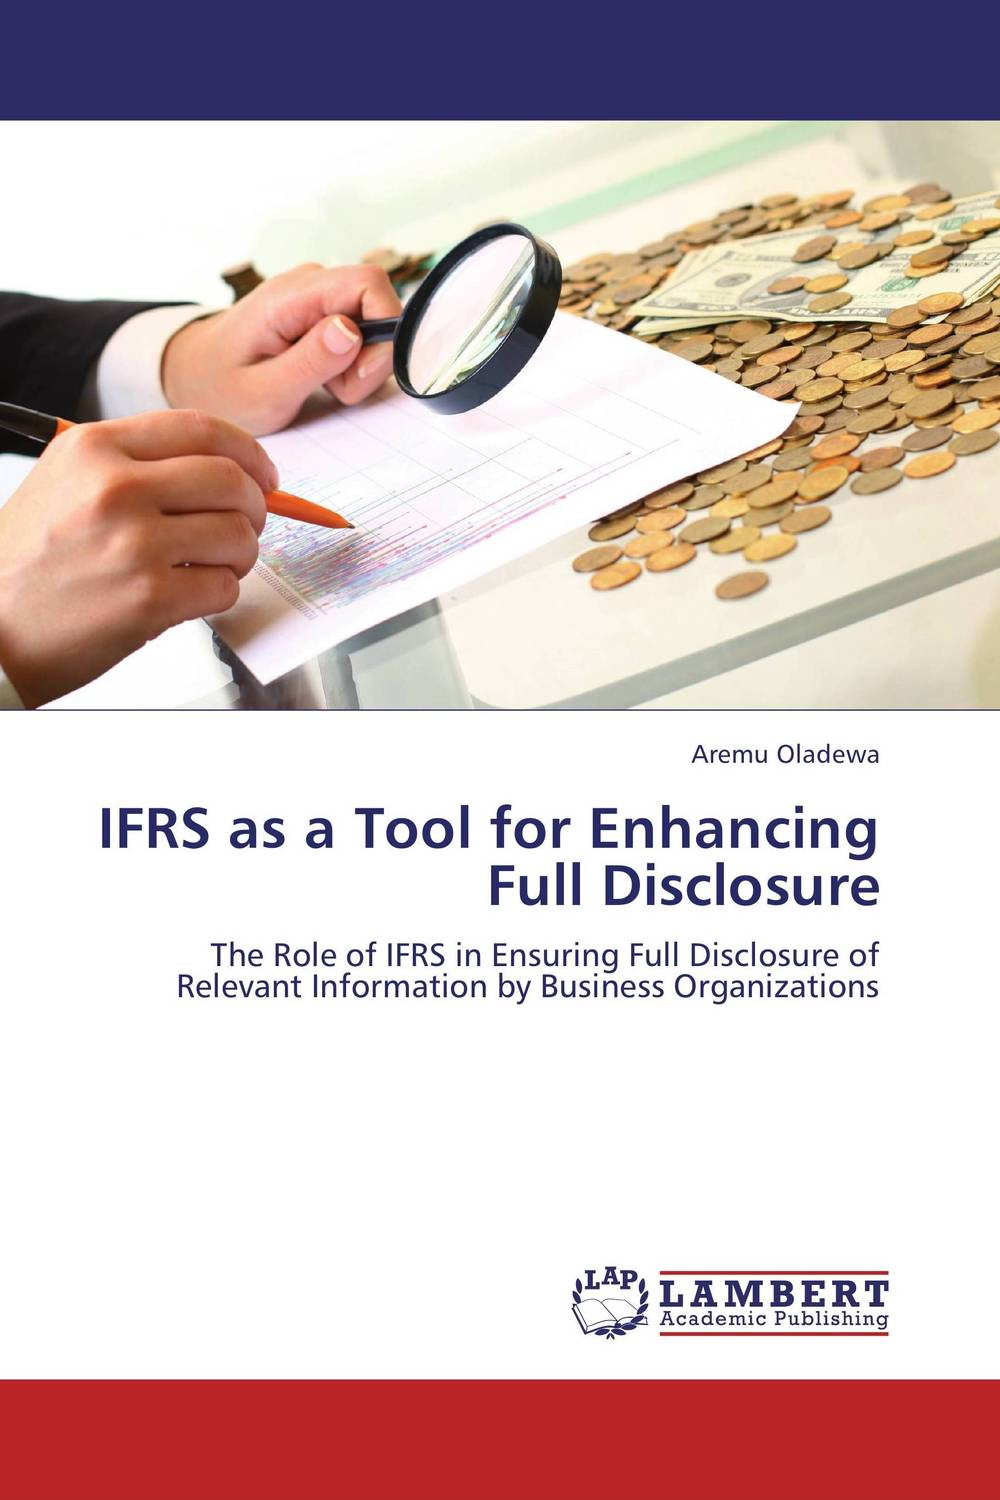 IFRS as a Tool for Enhancing Full Disclosure link for tractor parts or other items not found in the store covers the items as agreed